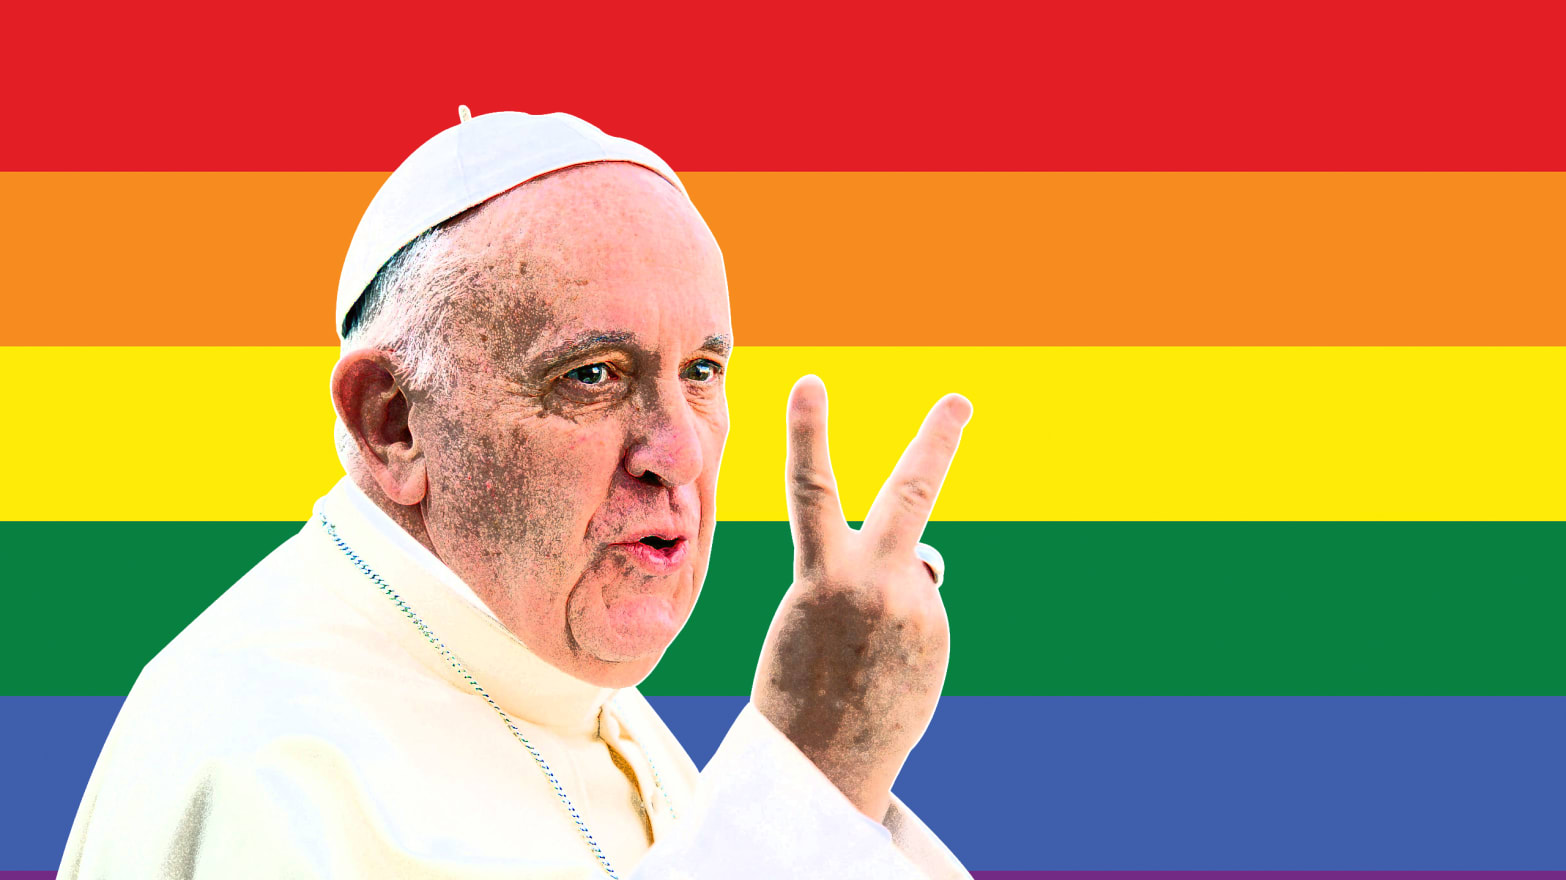 Pope Francis Blesses a Lesbian, Her Family, and Her Writing For Kids